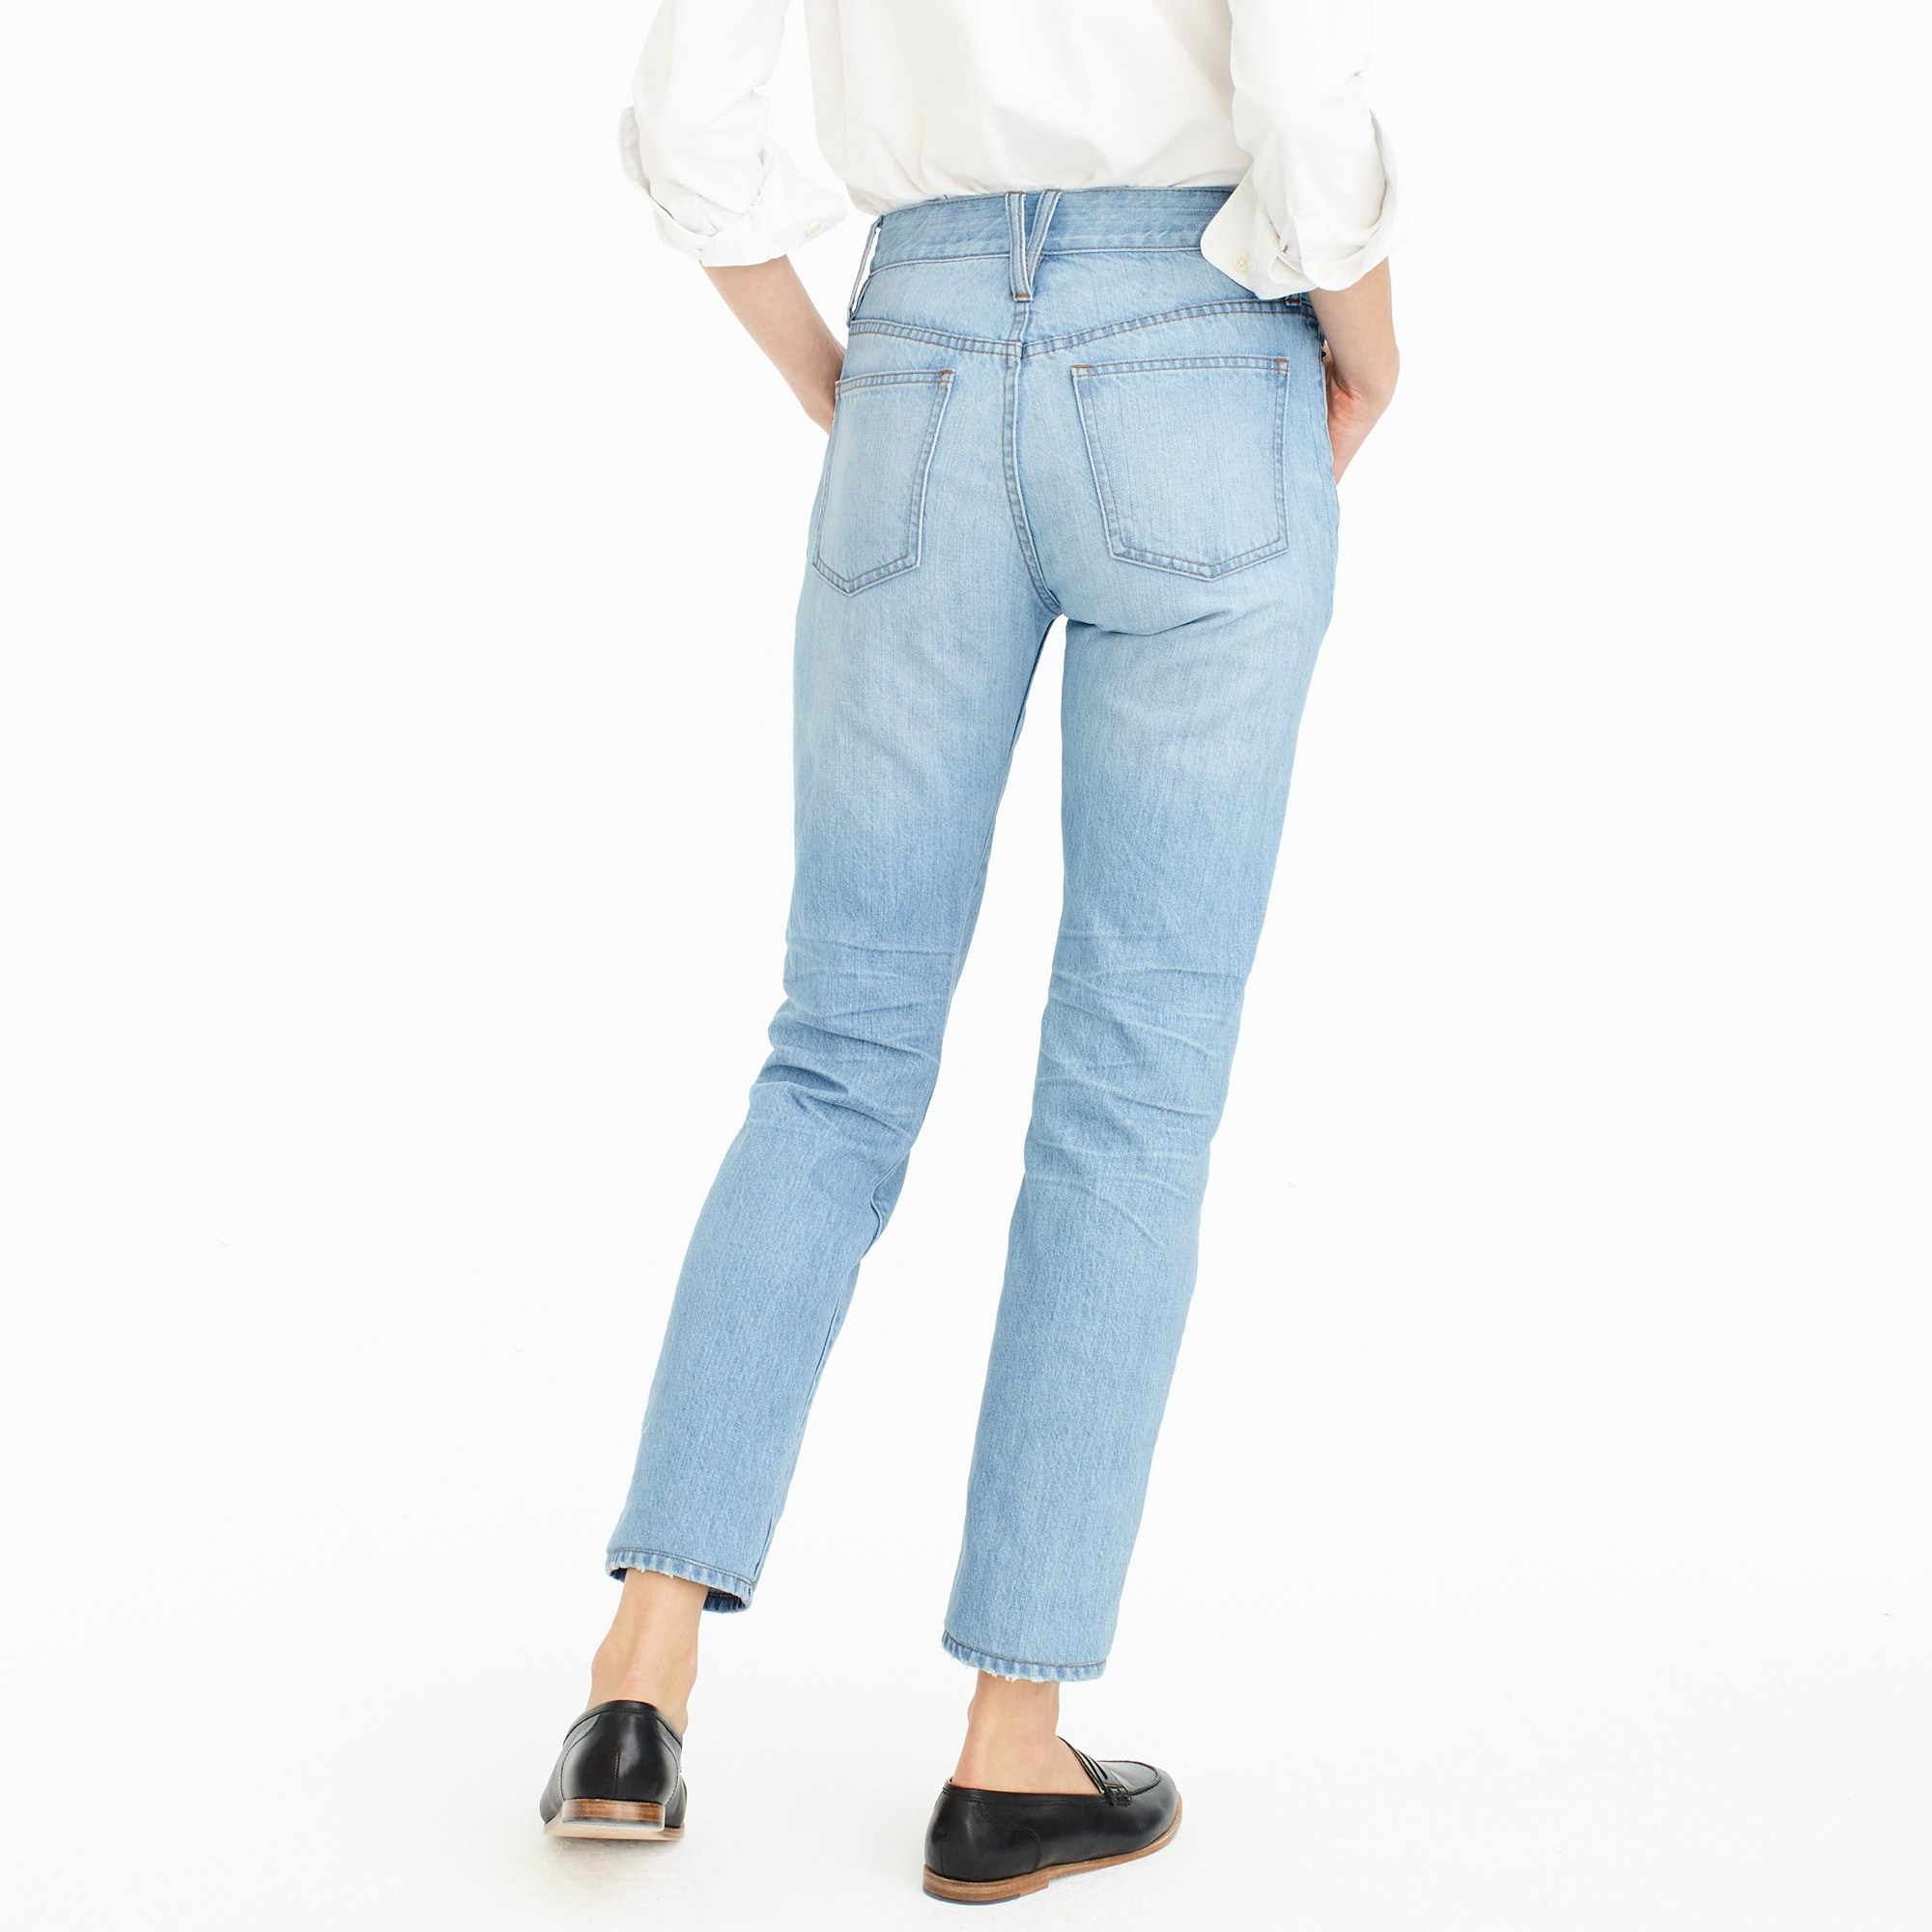 Petite Point Sur high-rise retro straight jean